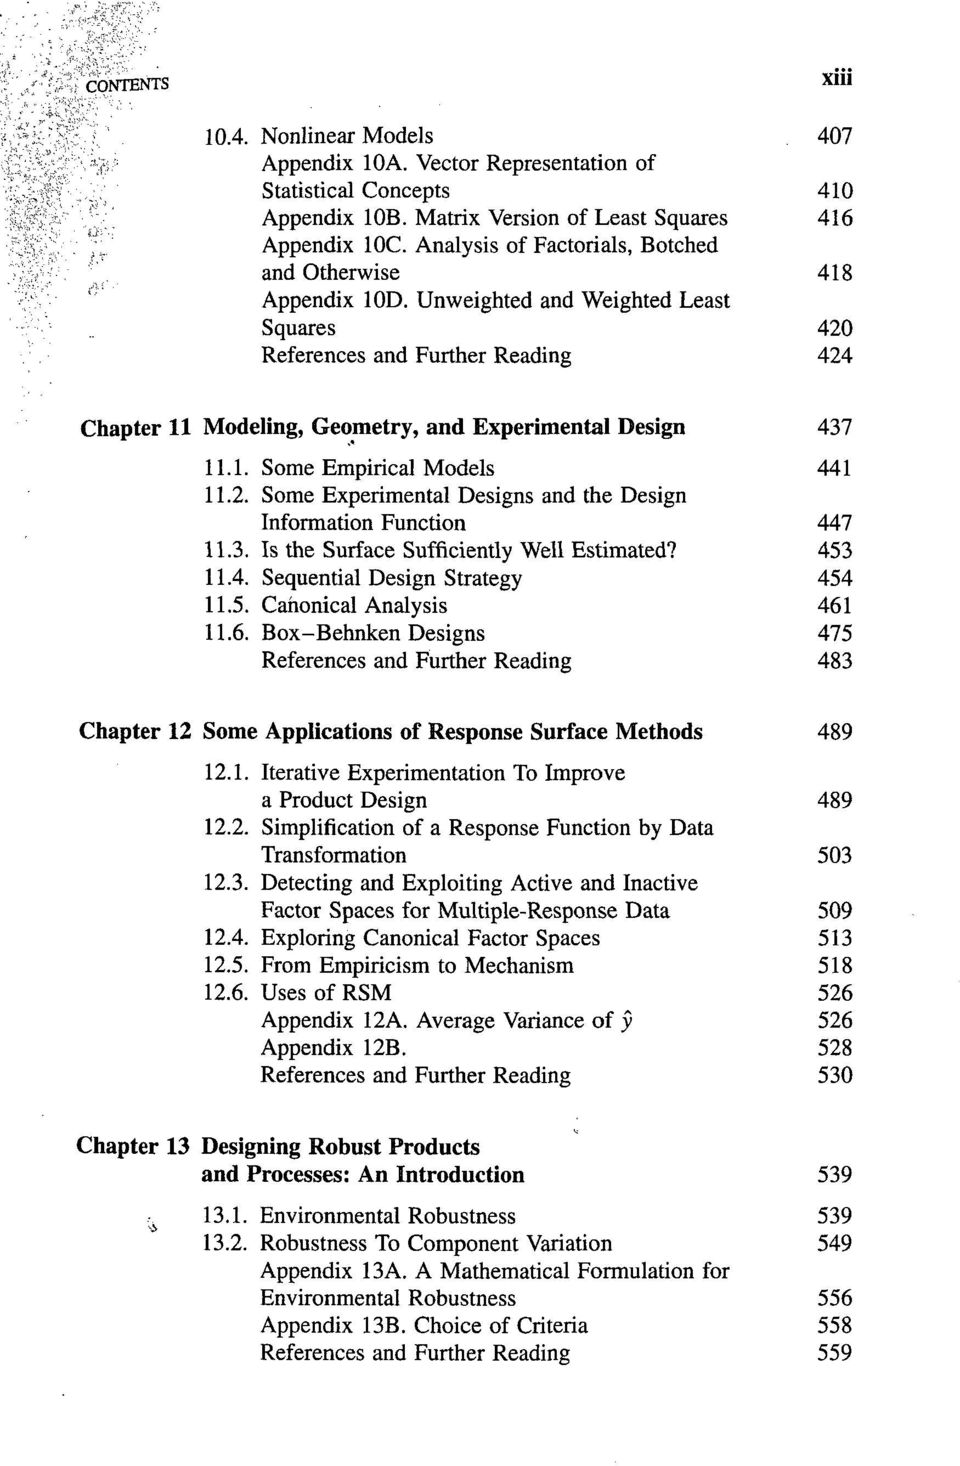 Unweighted and Weighted Least Squares 420 References and Further Reading 424 Chapter 11 Modeling, Geometry, and Experimental Design 437 11.1. Some Empirical Models 441 11.2. Some Experimental Designs and the Design Information Function 447 11.